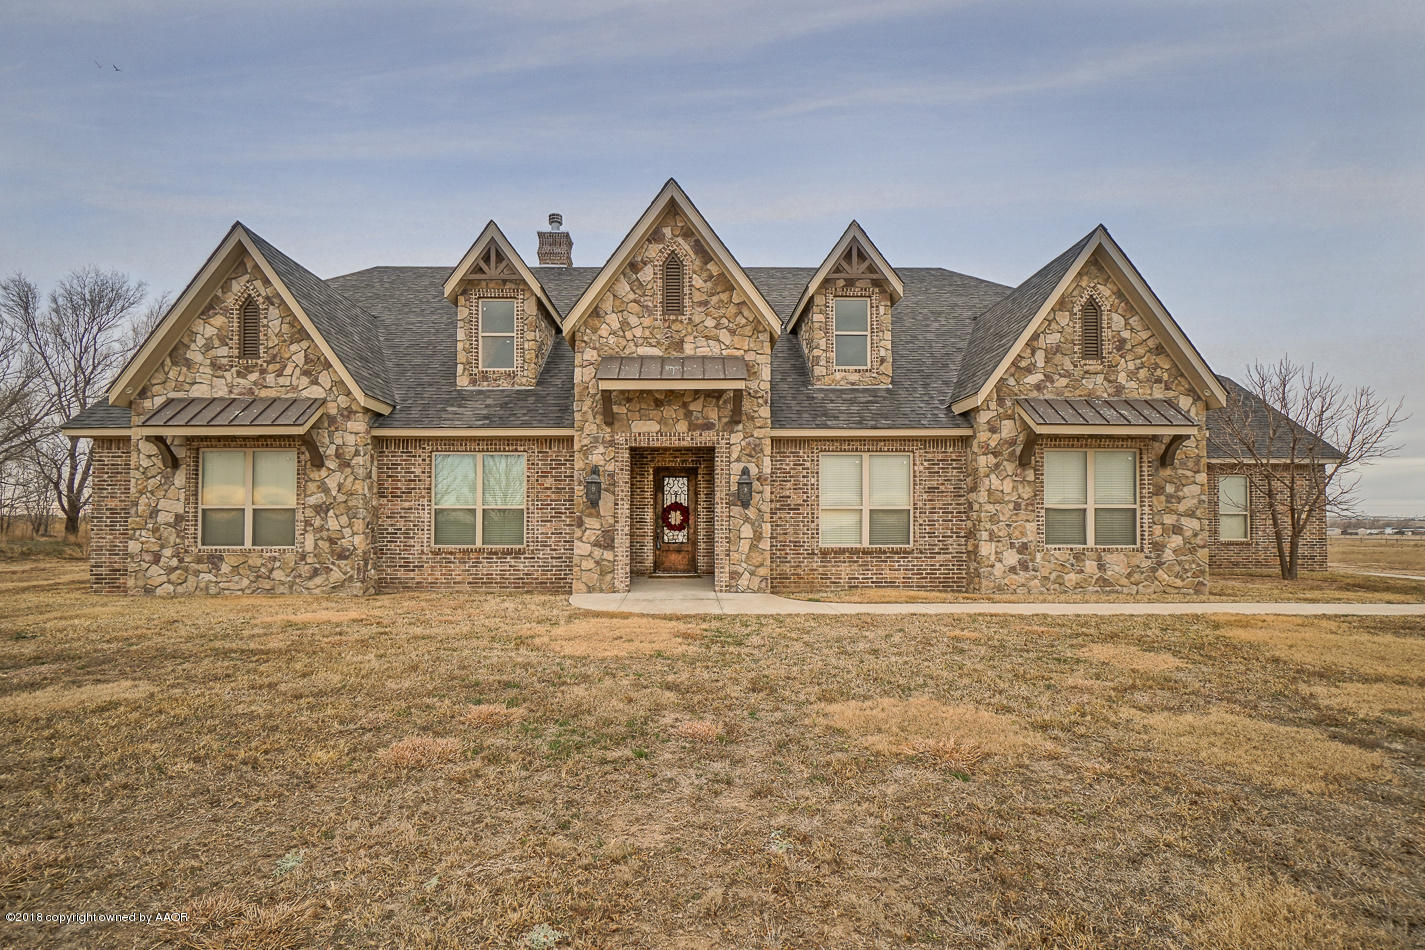 8940 TRADEWIND ST, Amarillo in Randall County, TX 79118 Home for Sale